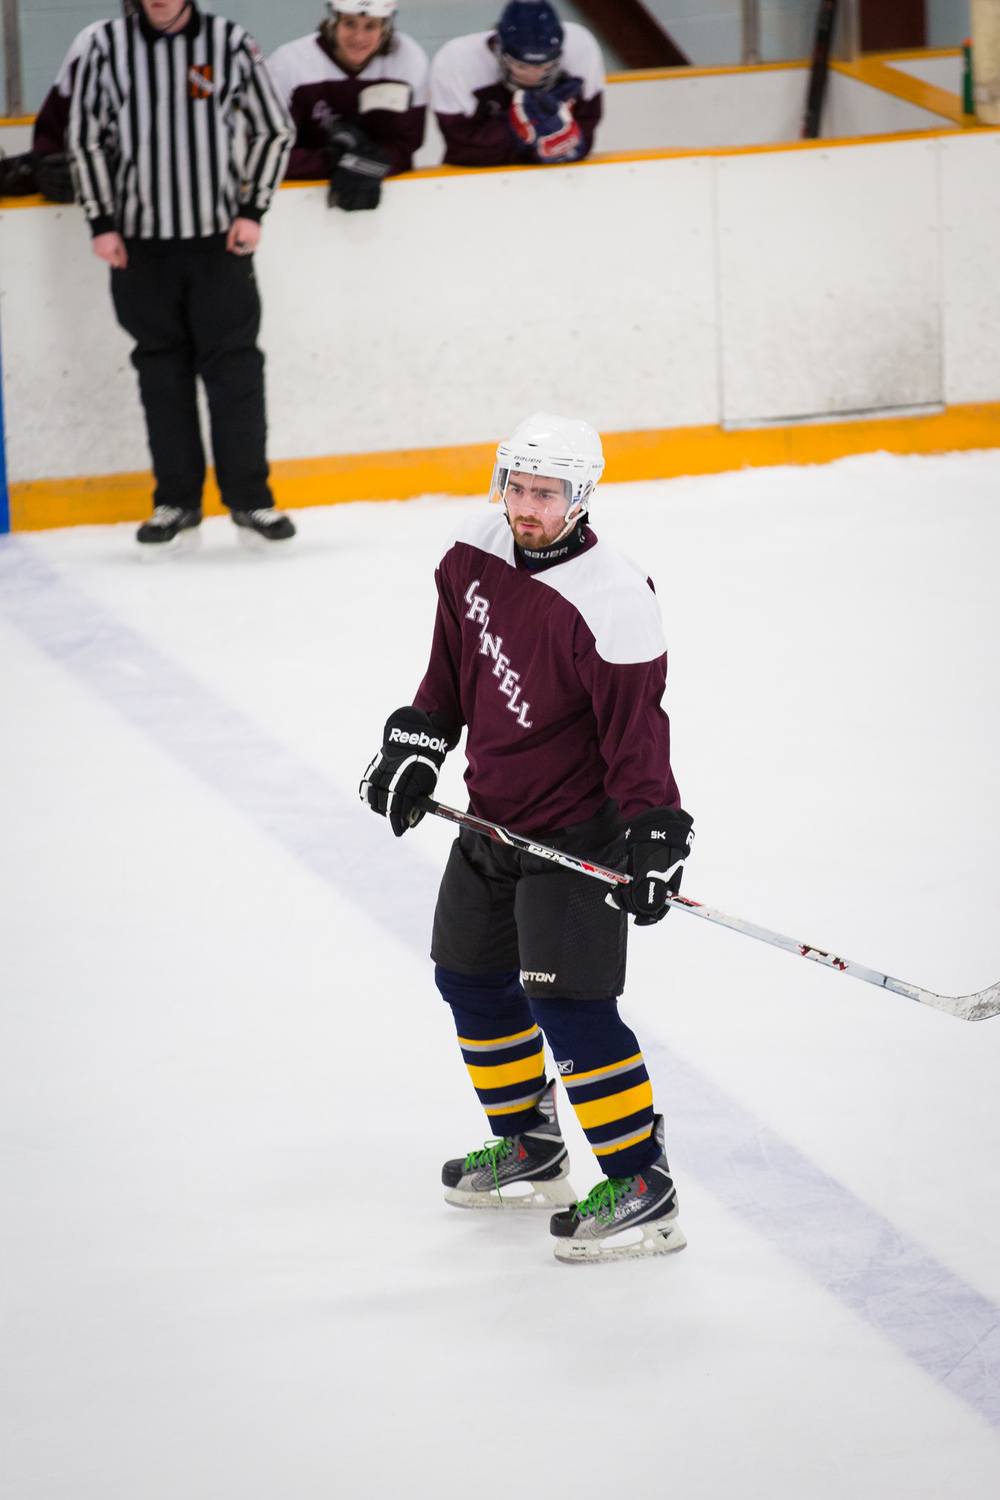 GrenfellCharityHockeyGame2016-April5-2016-34.jpg